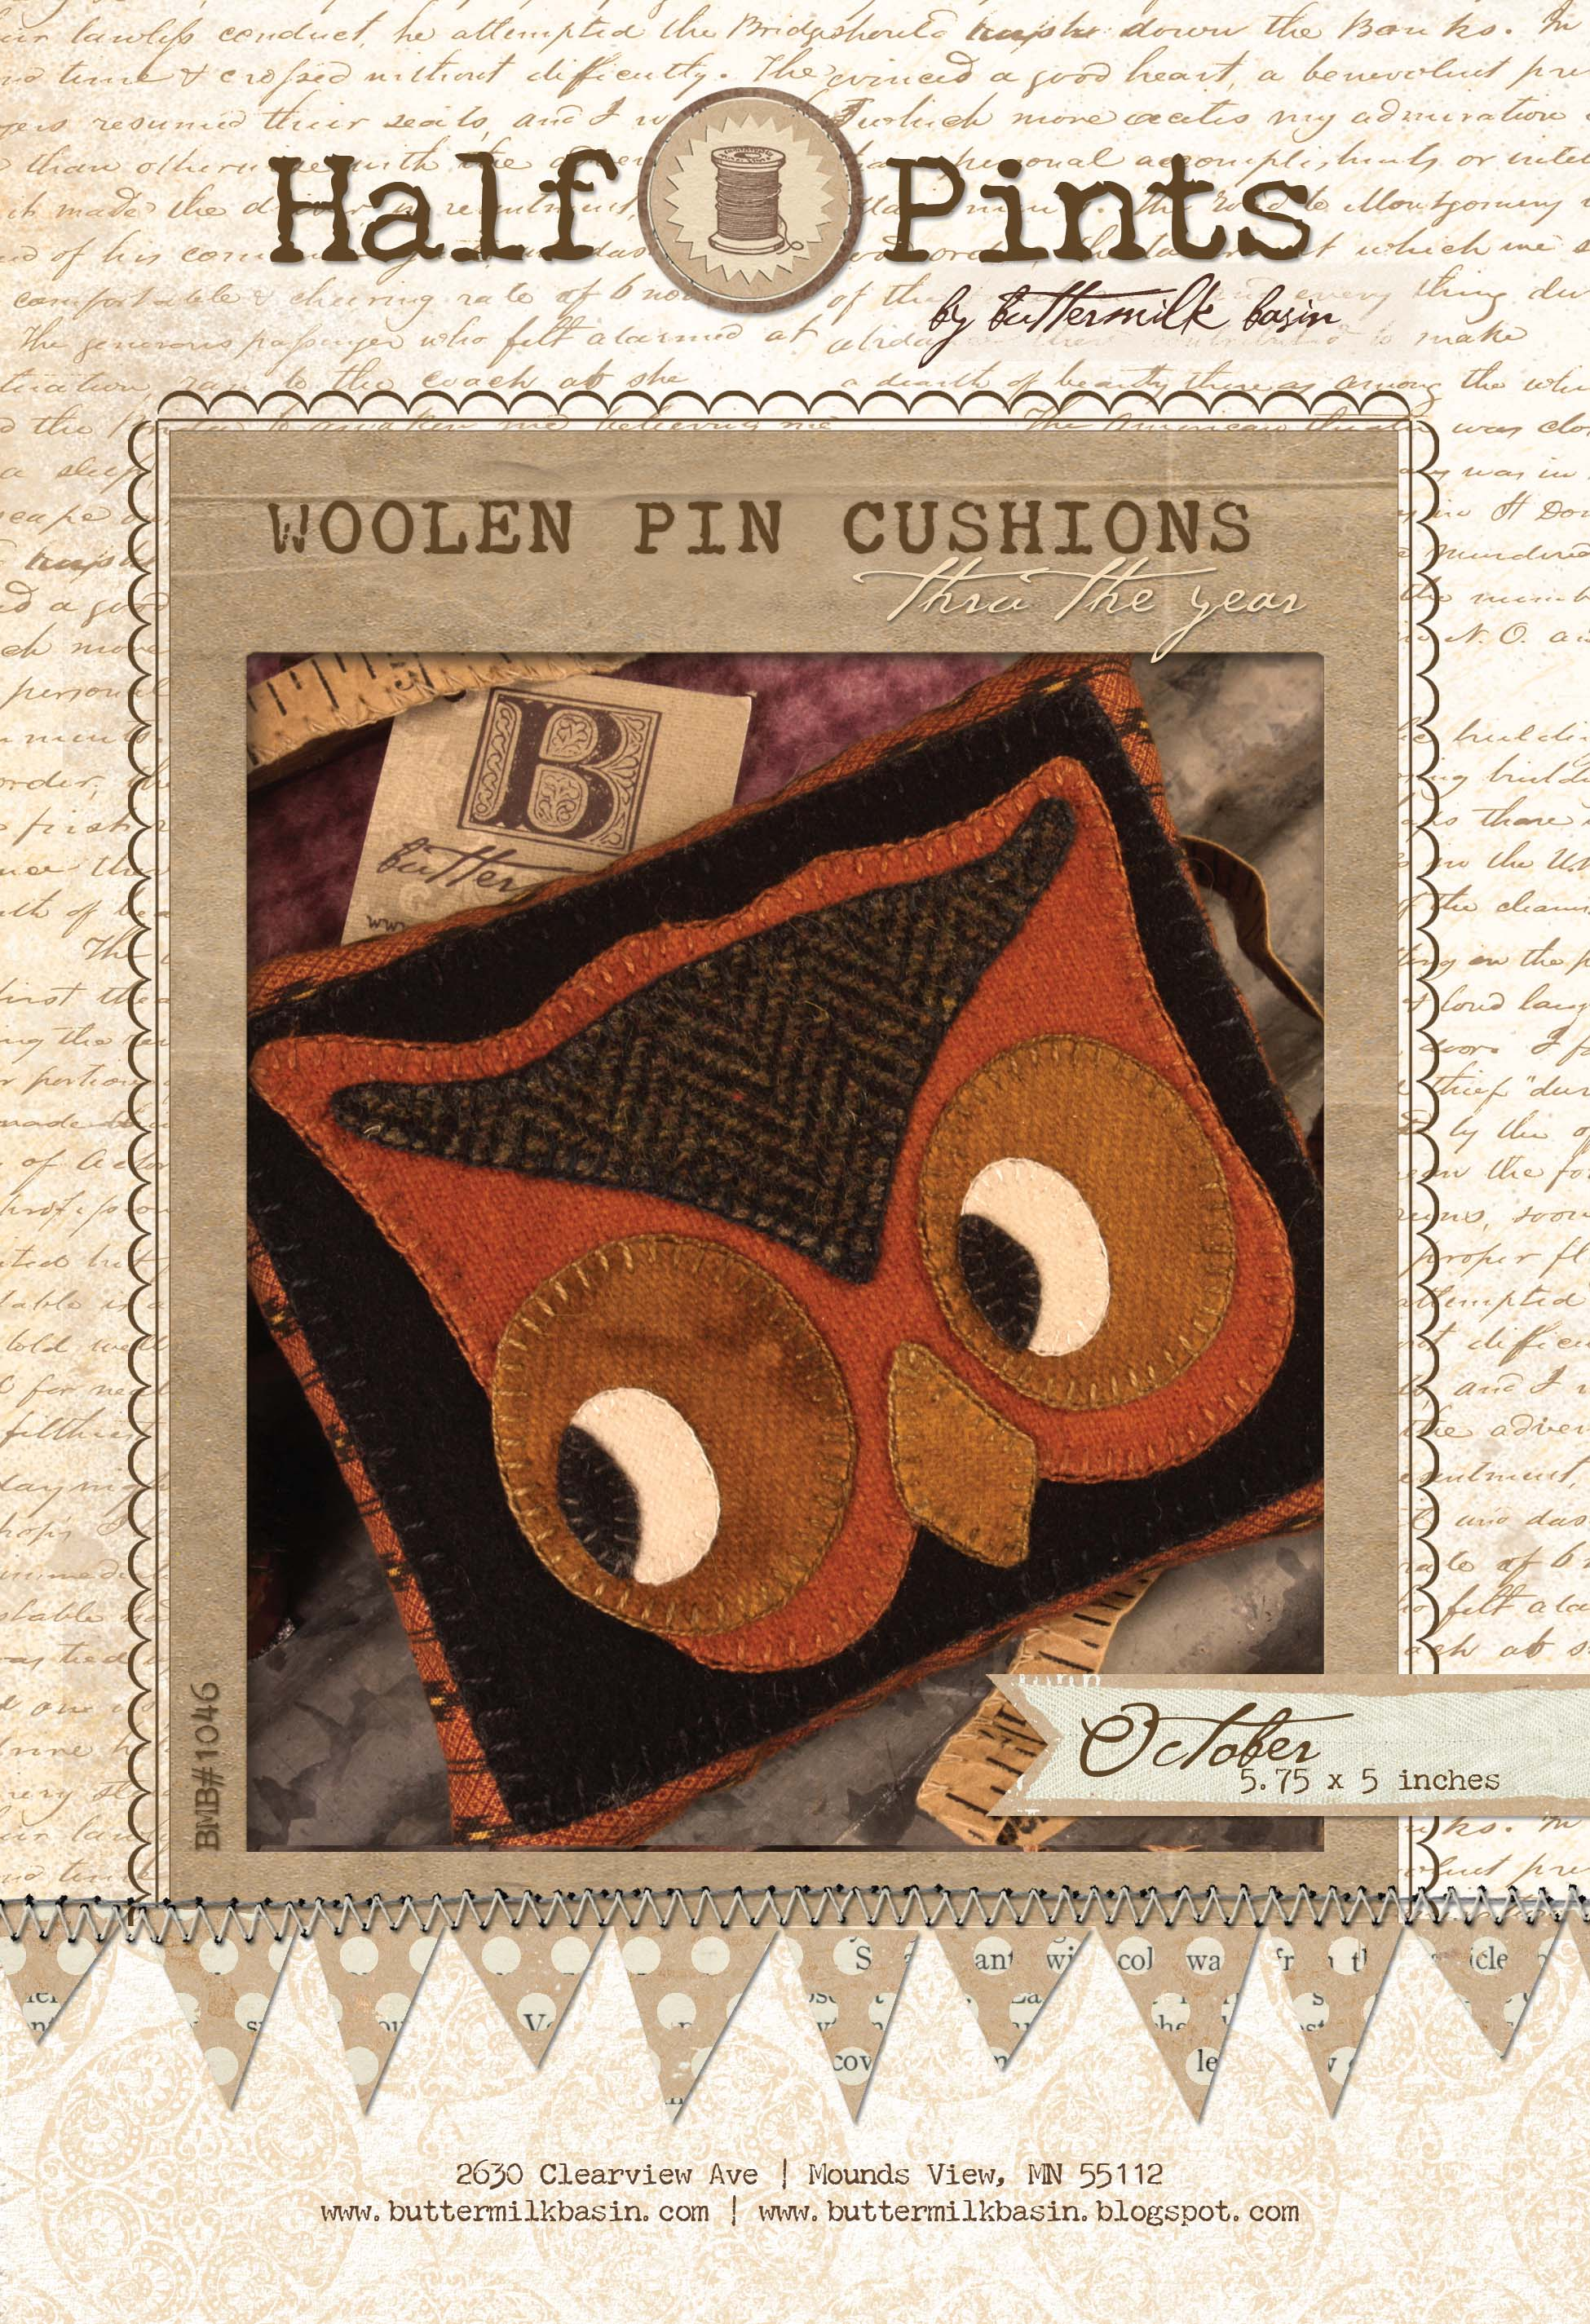 Woolen Pin Cushion - Oct.